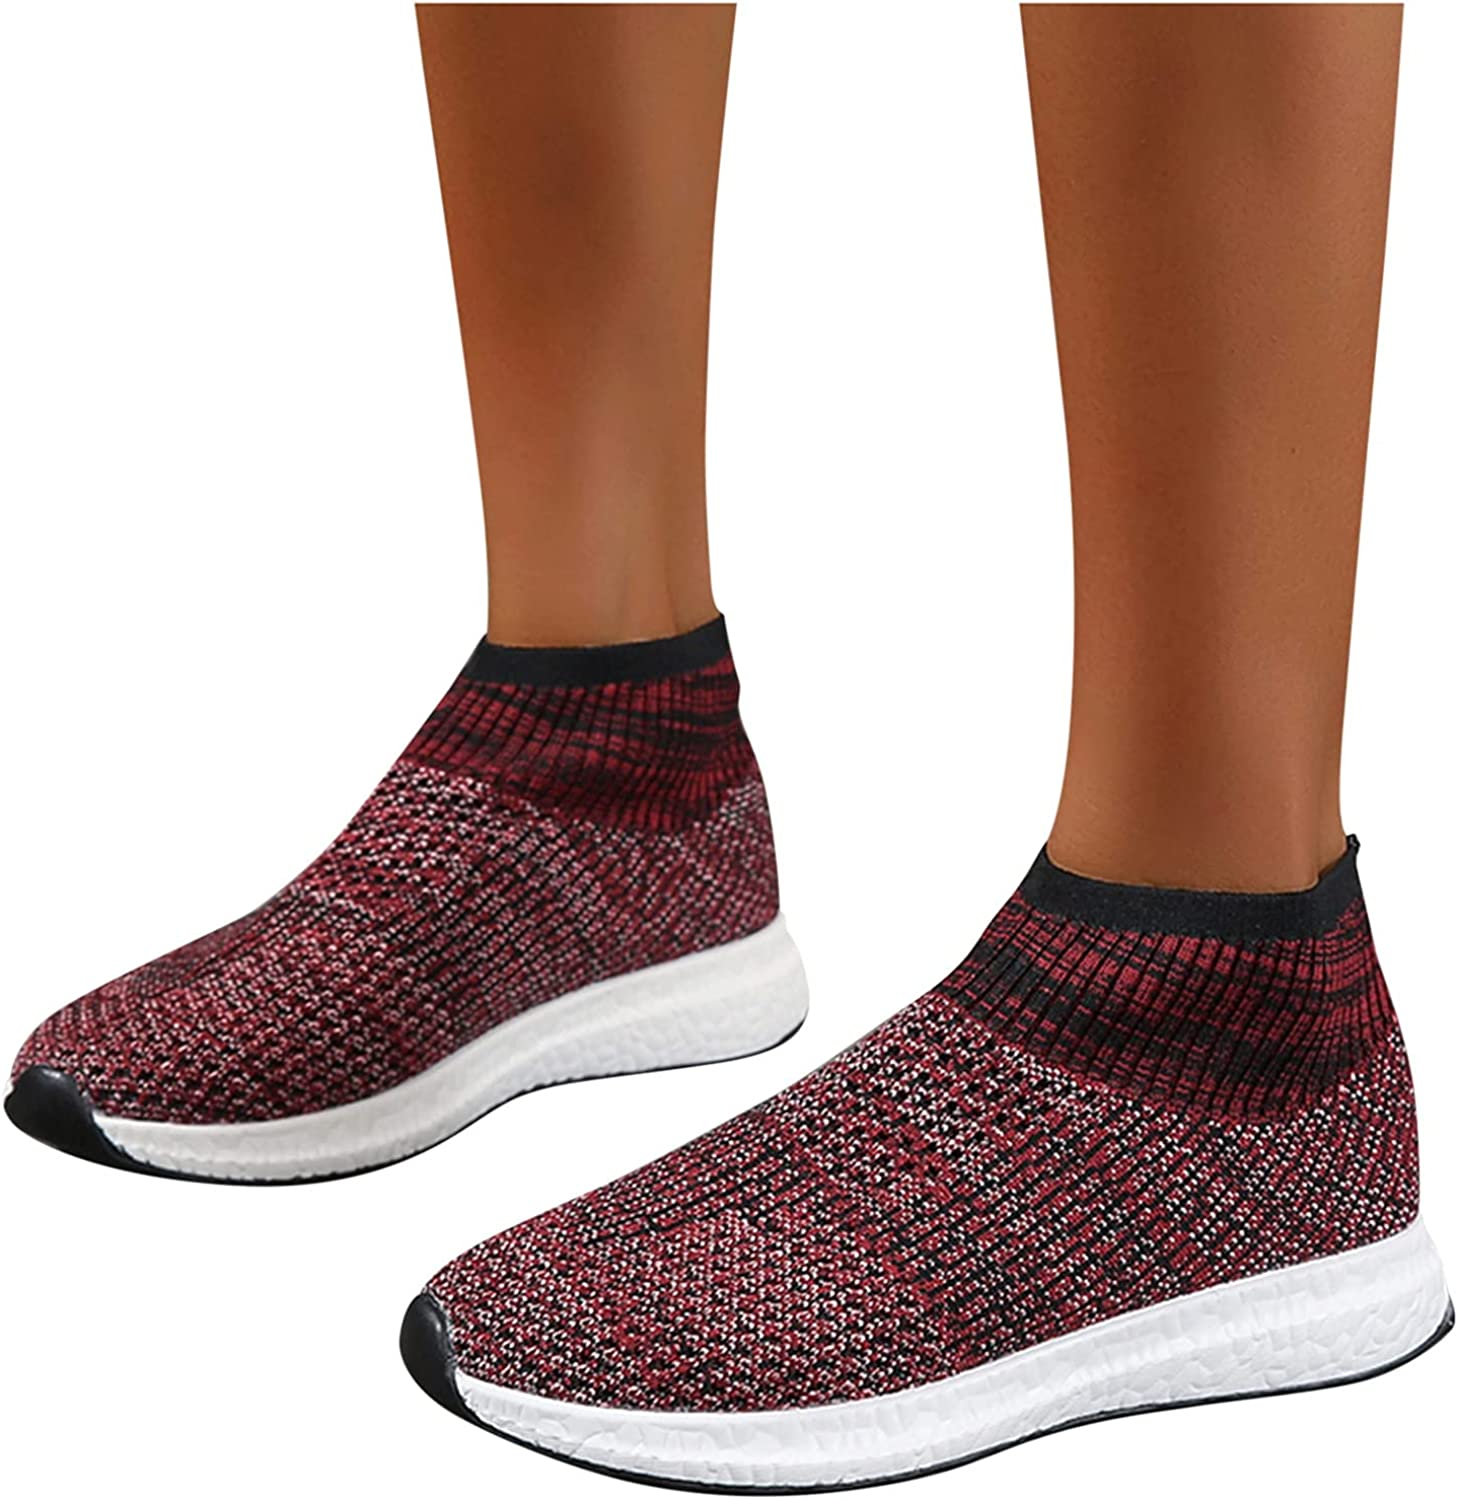 UOCUFY Sneakers for Women Slip On Sneakers Comfort Breathable Mesh Running Shoes Lightweight Casual Walking Shoes Athletic Shoes